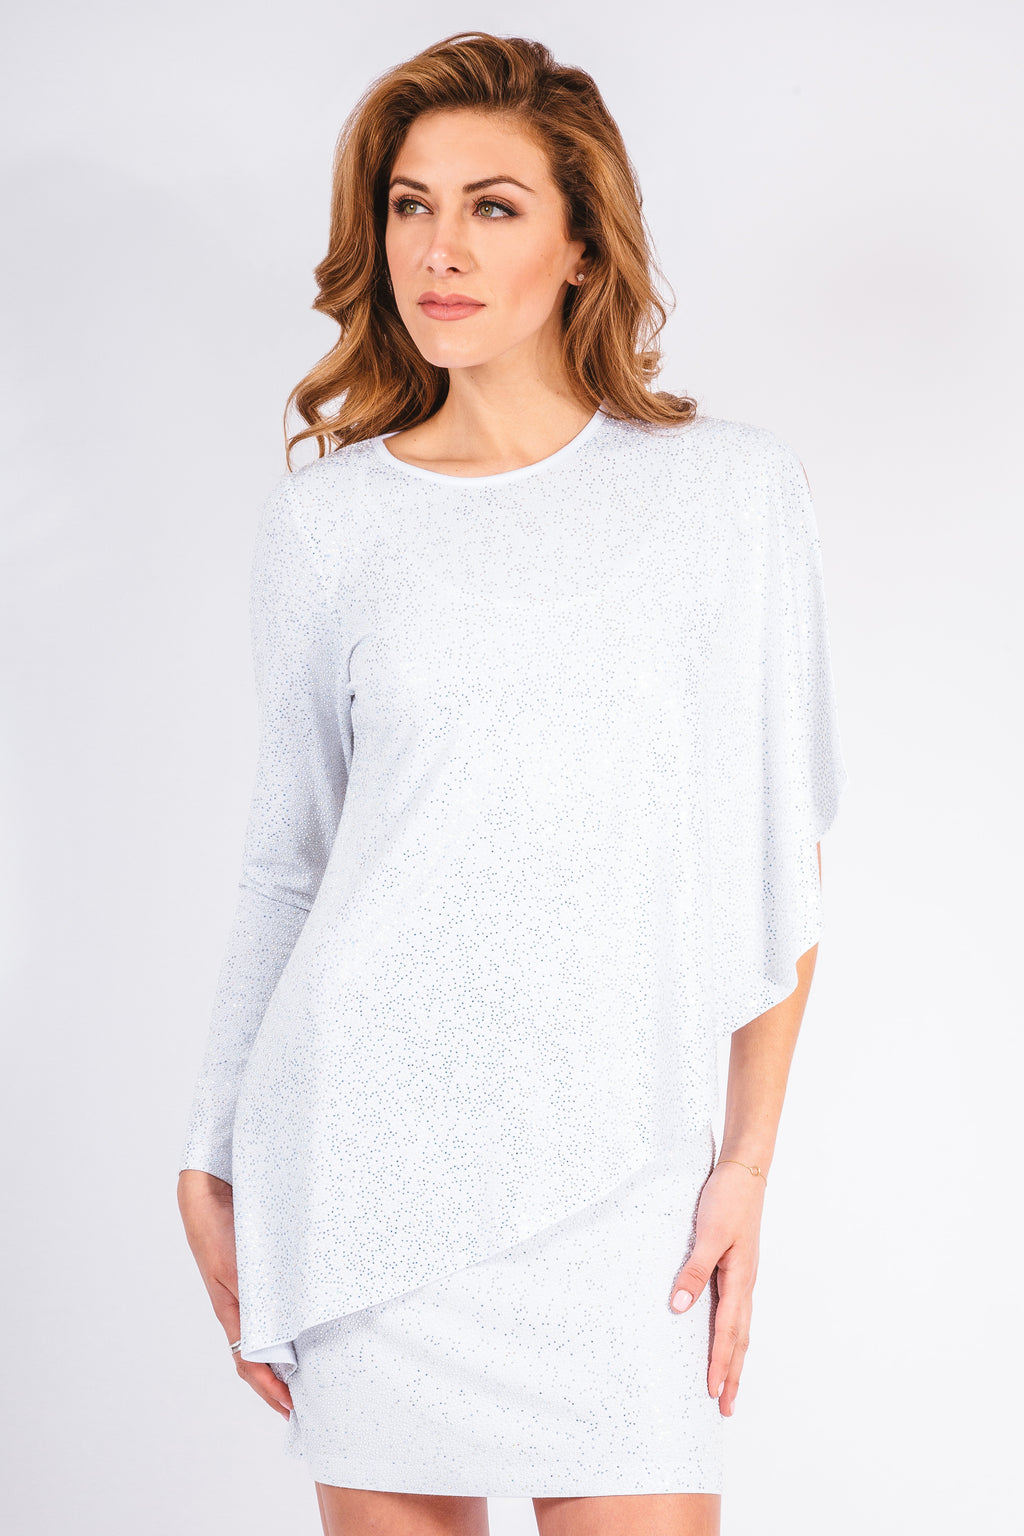 Crystal Asymmetrical Top - W5400309